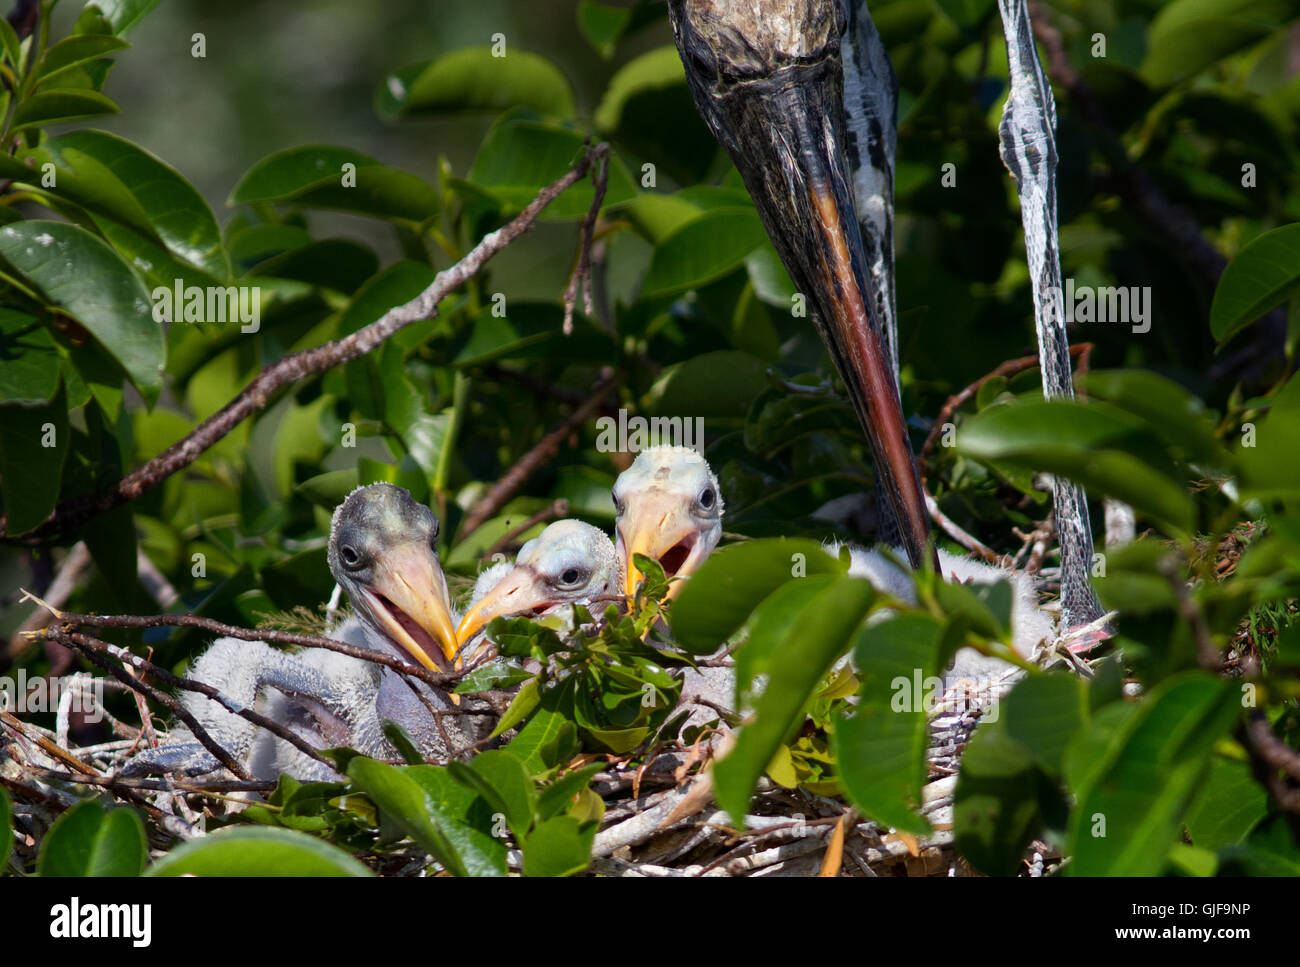 The parent wood stork stands protectively over its young nestlings before a feeding session. - Stock Image